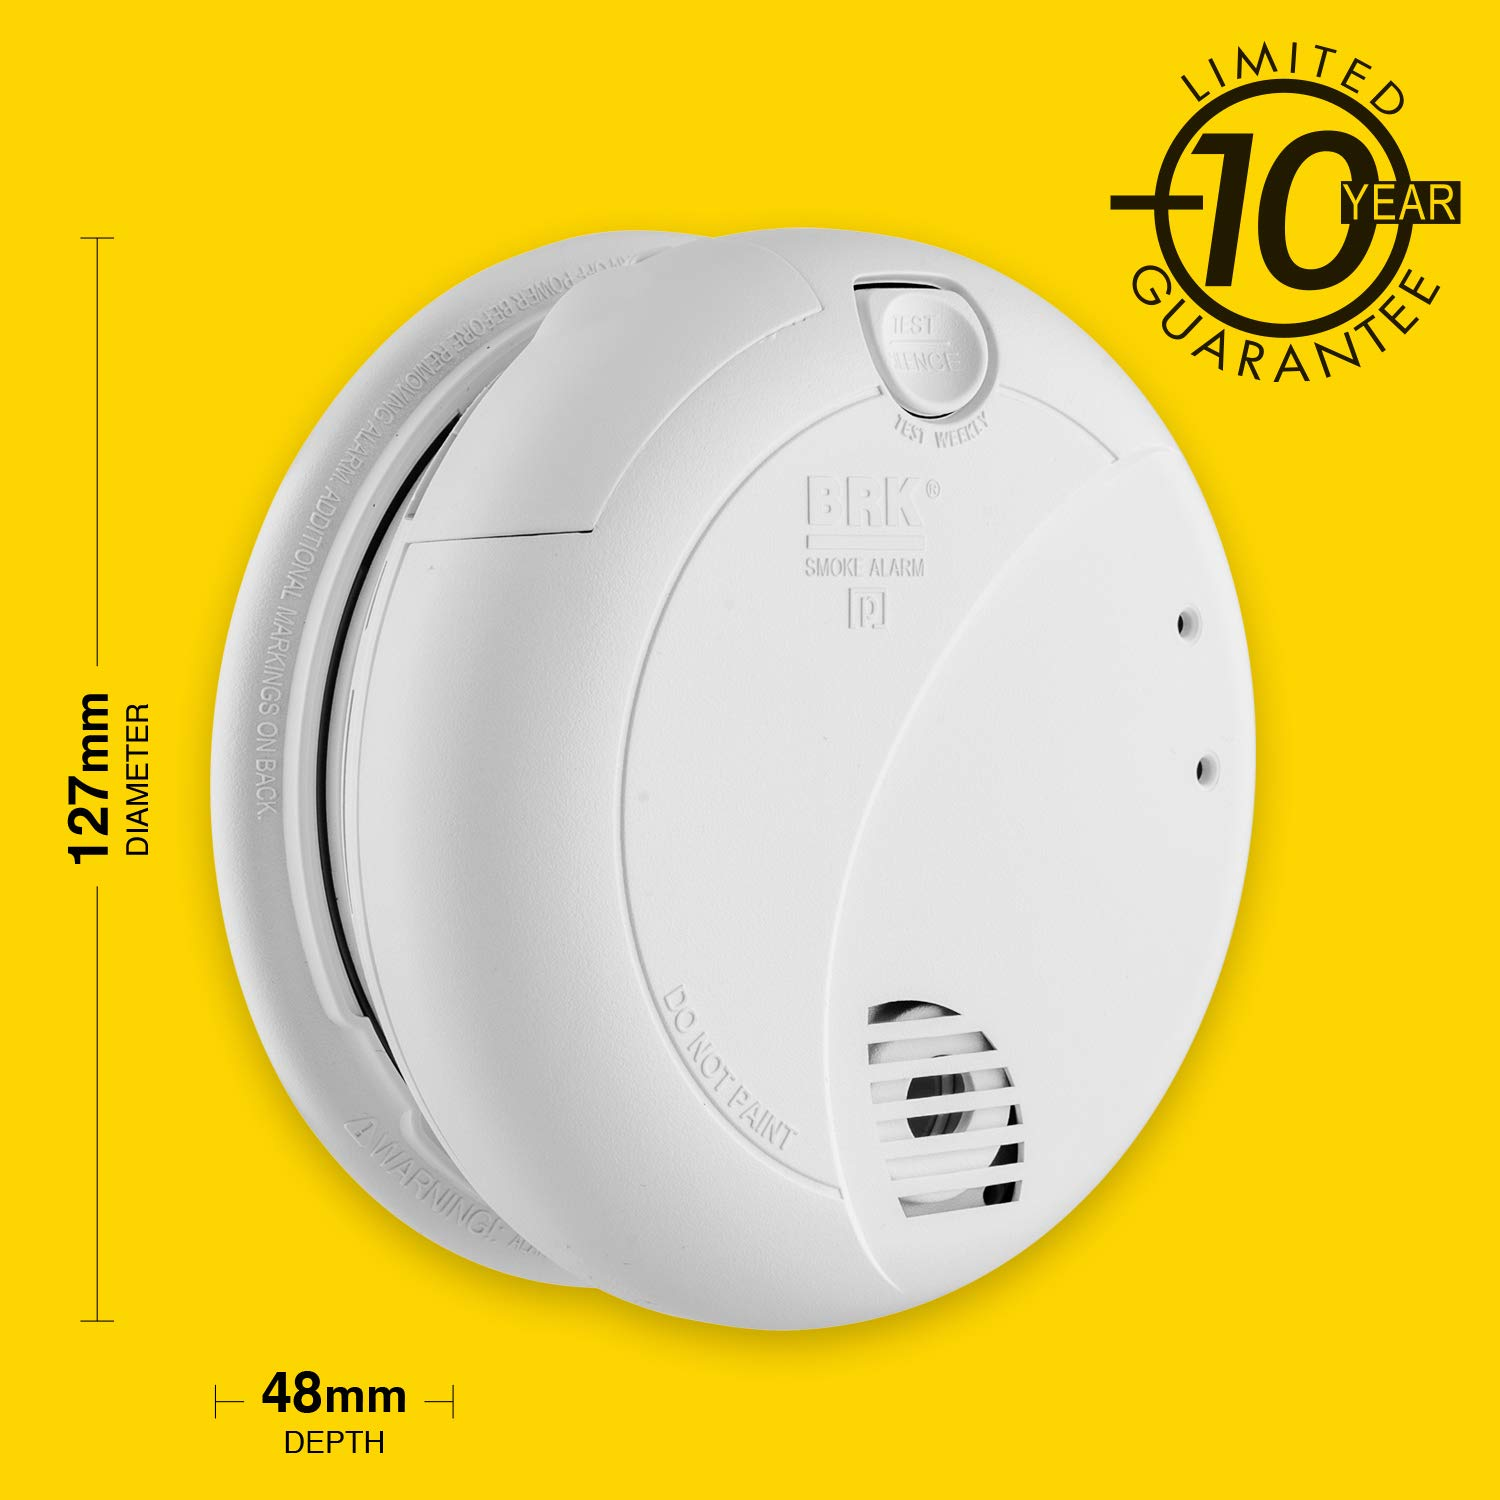 BRK 7010LBE Optical Smoke Alarm, Mains Powered with 10 Years Battery Backup